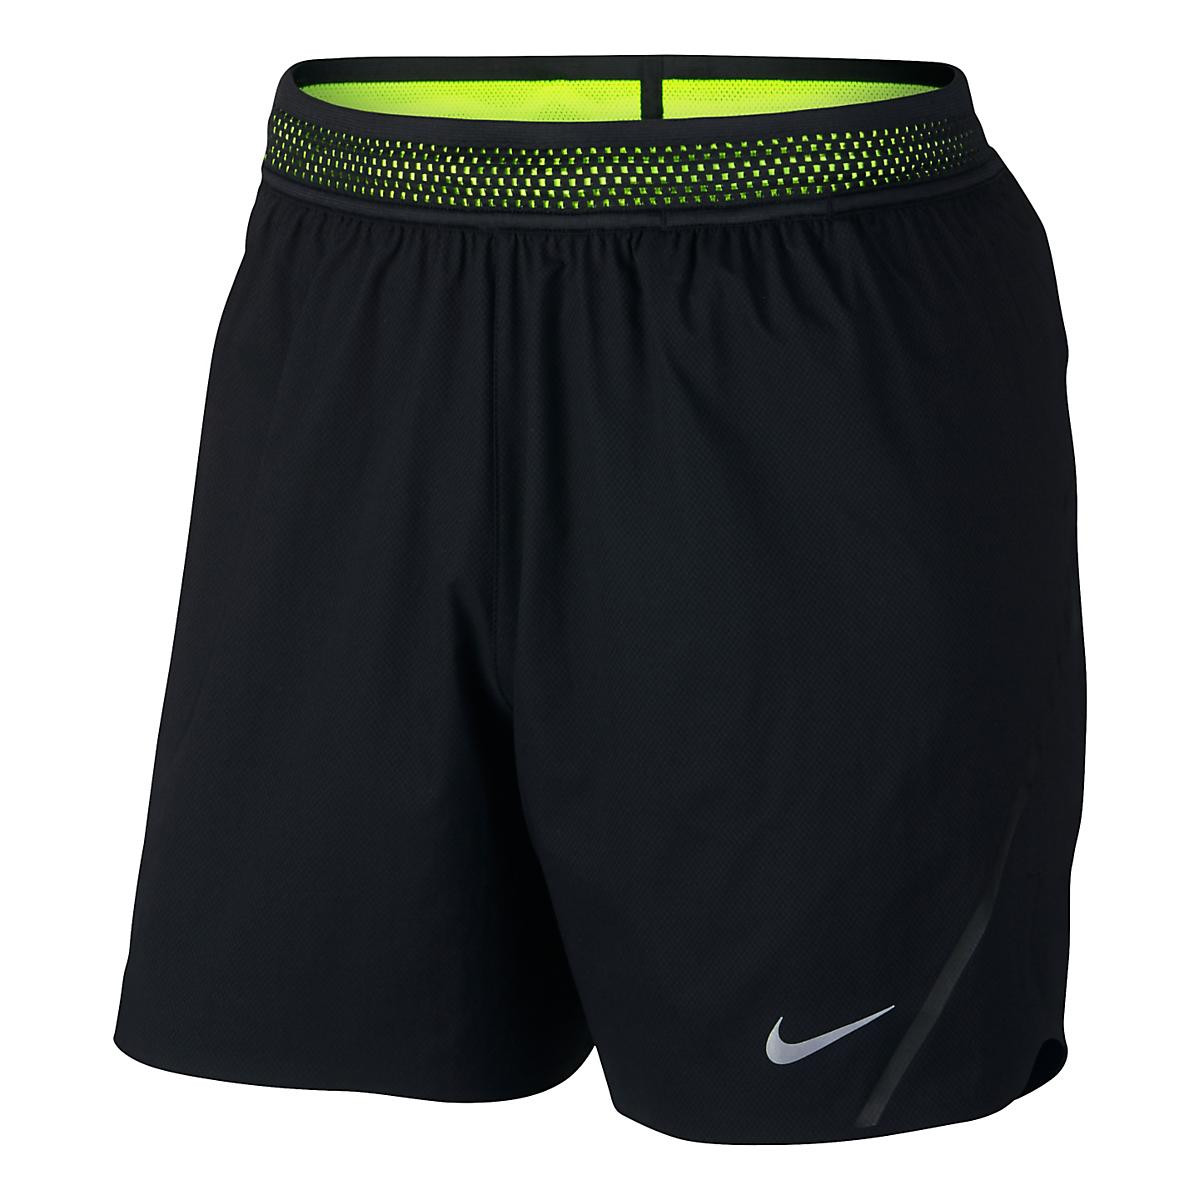 Men's Aeroswift Race Short